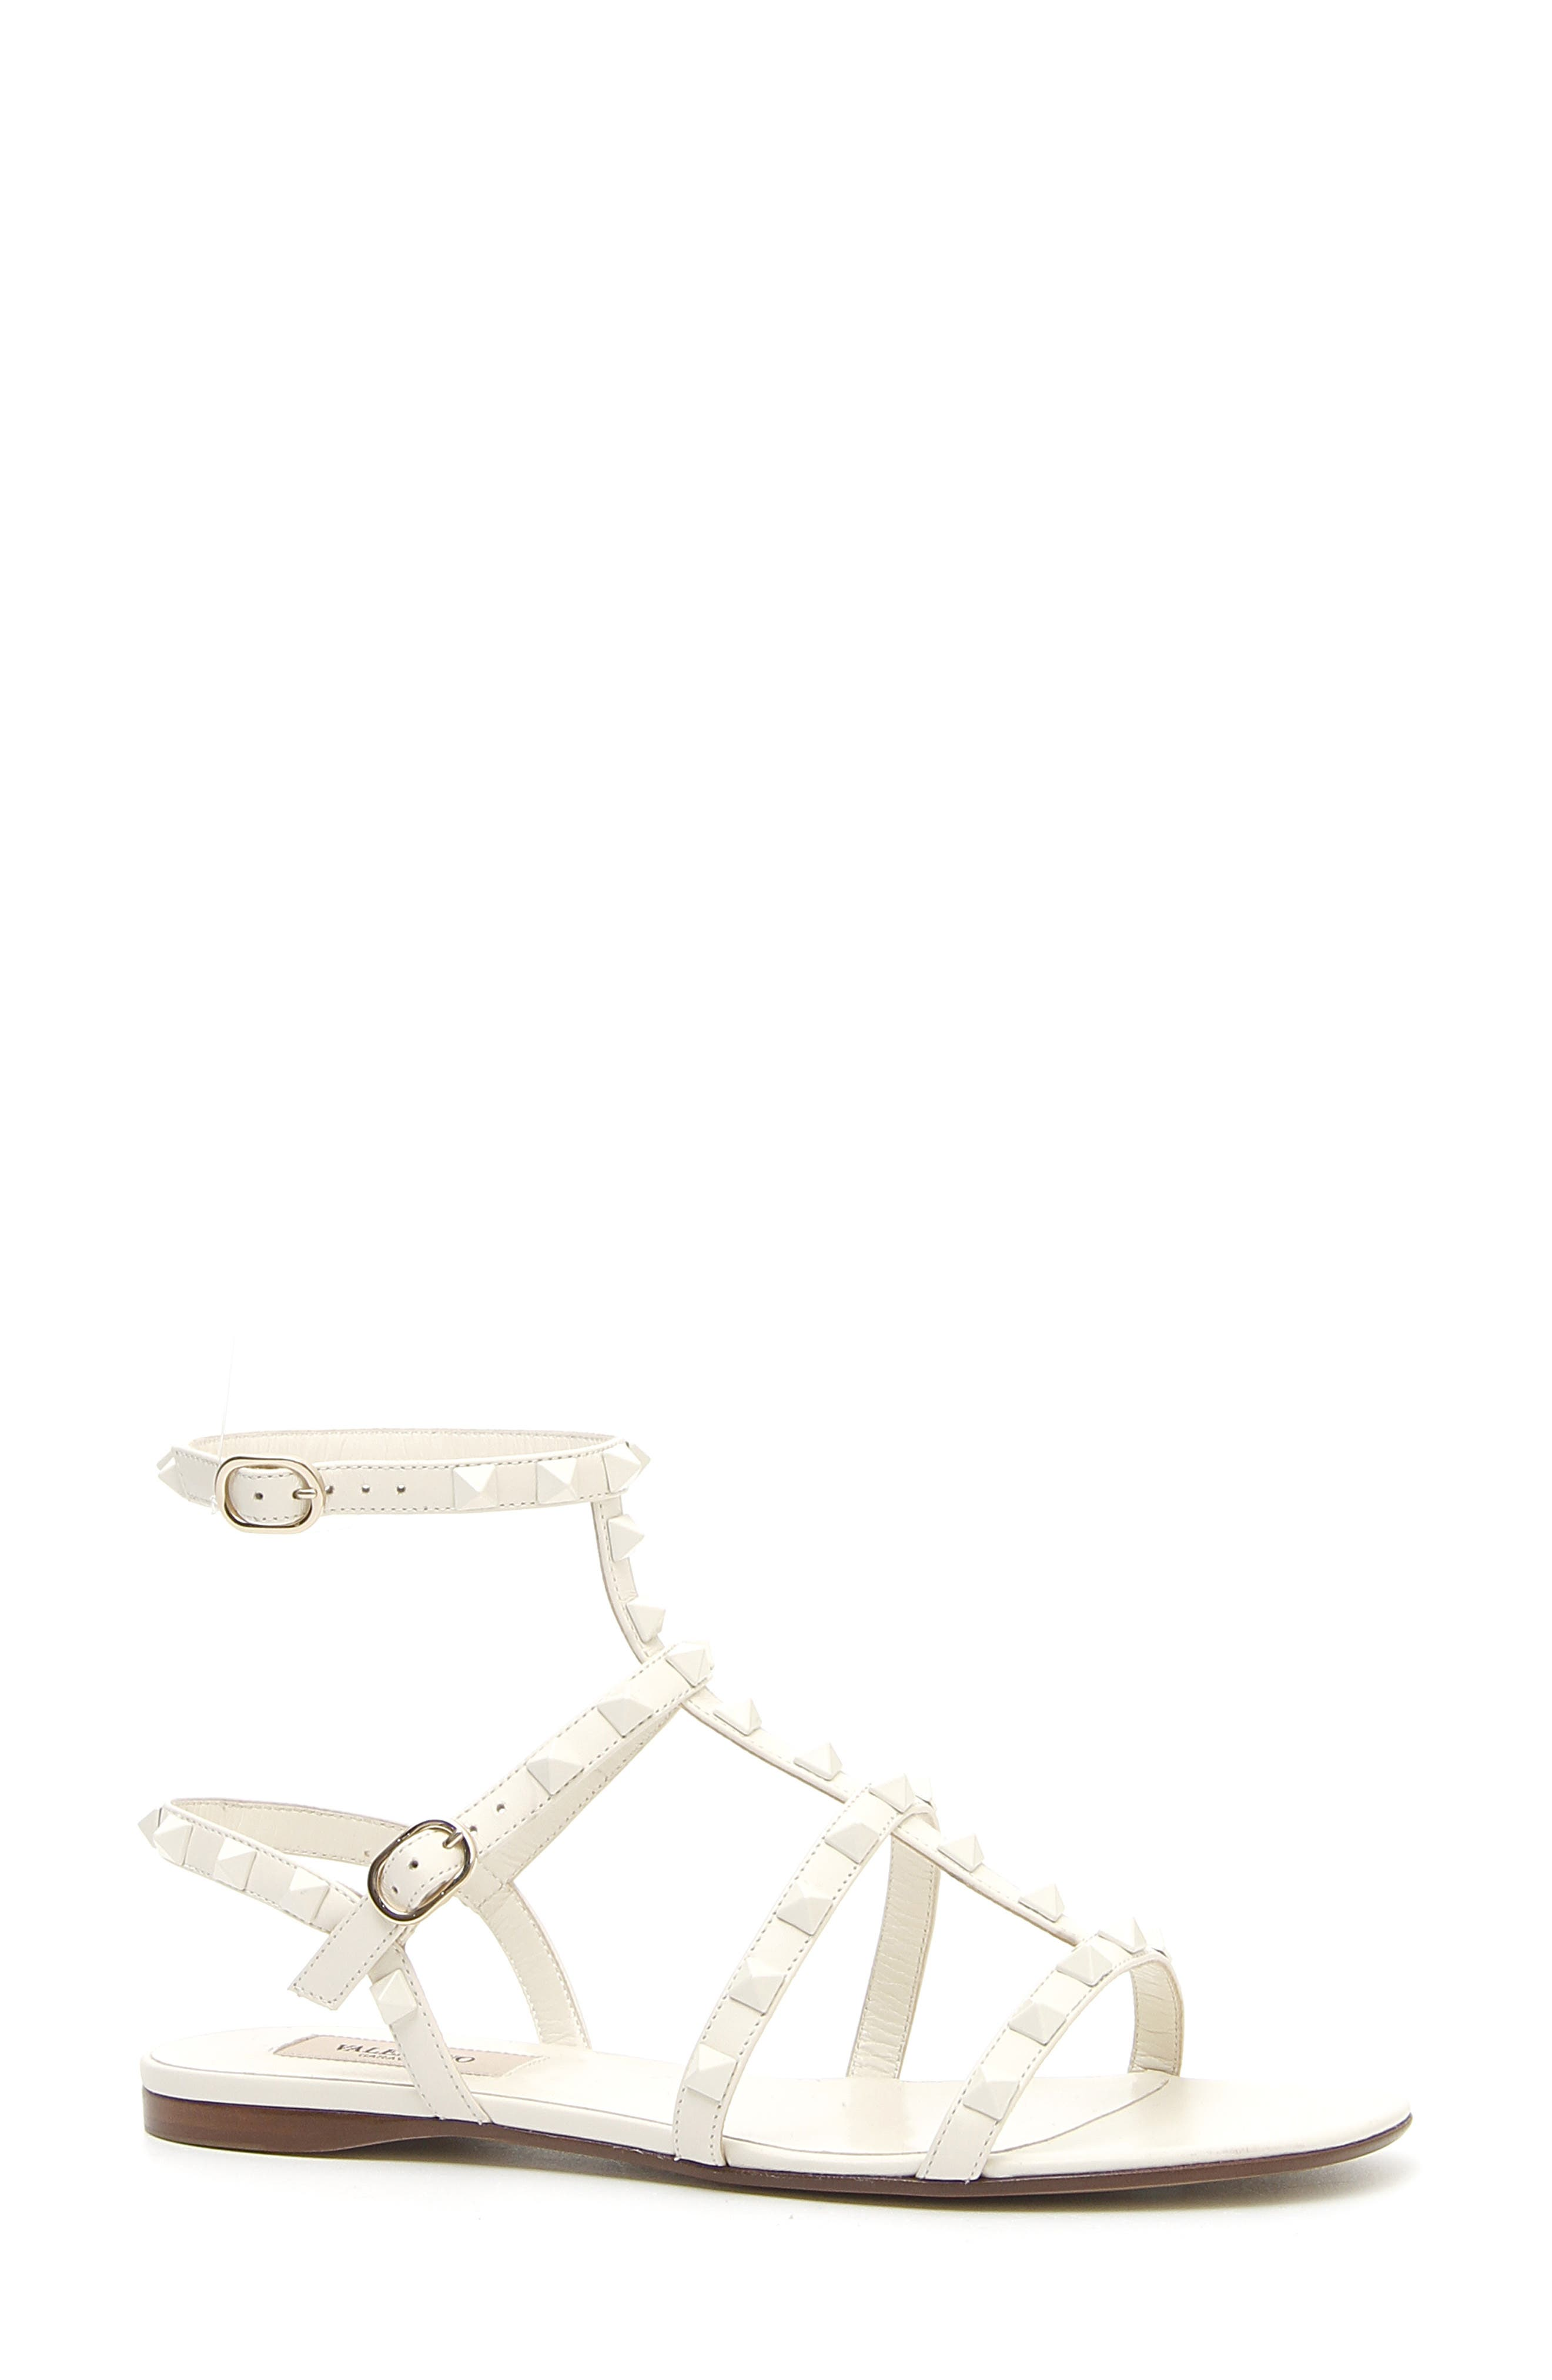 Rockstud Flat Strappy Leather Sandals (Tonal Hardware) in Ivory/ Ivory